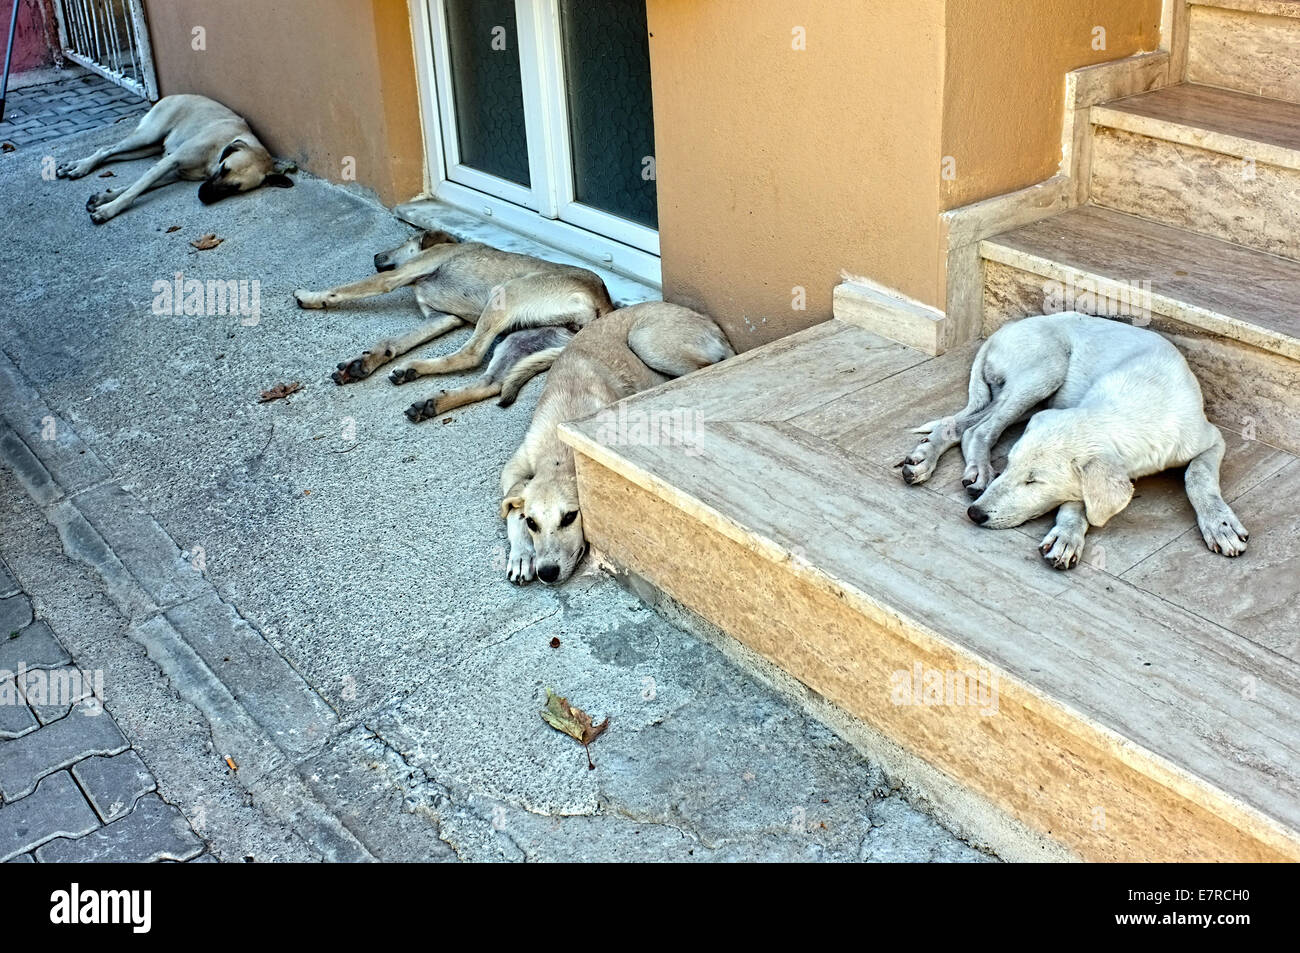 Dogs are sleeping on the street - Stock Image